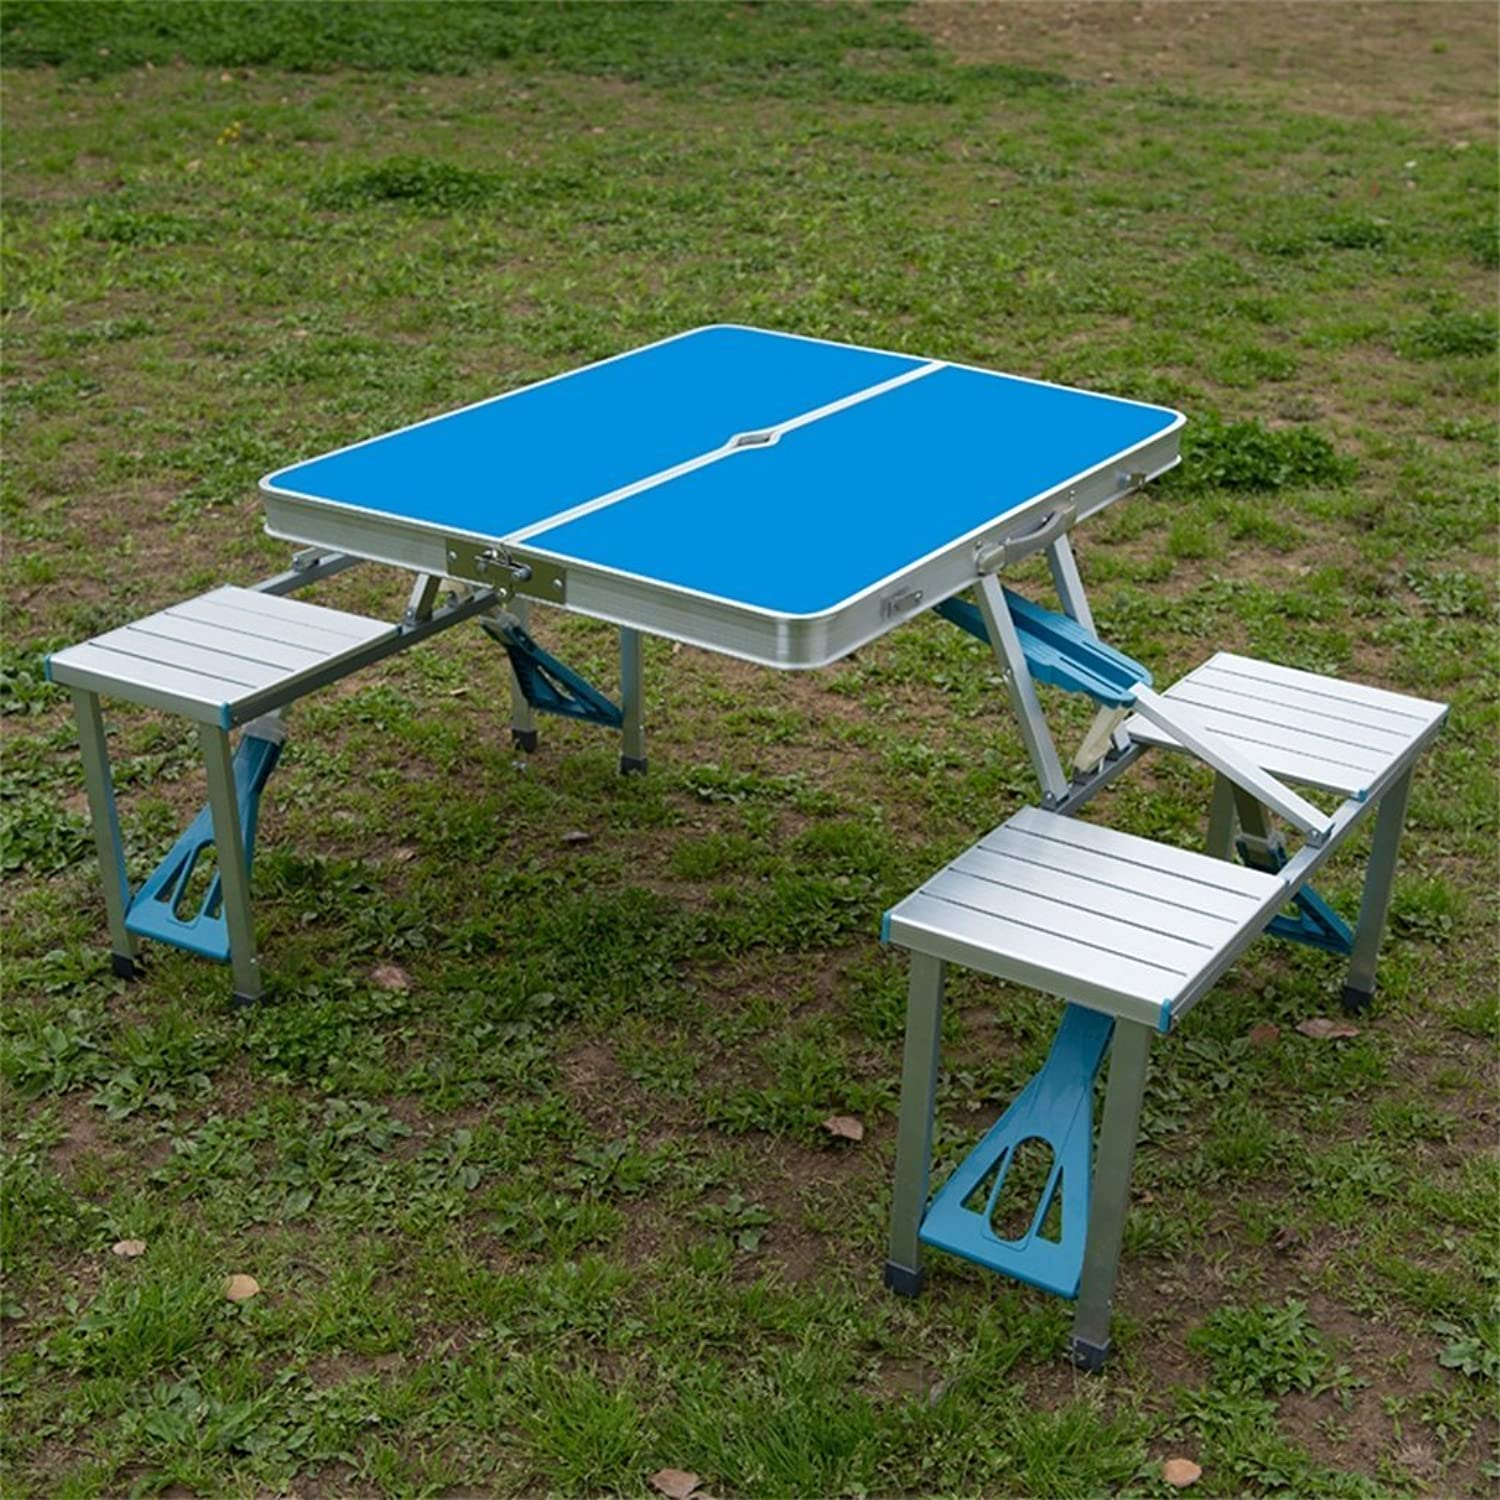 Cqq Folding Table Folding Table Outdoor Portable Aluminum Alloy Siamese Tables and Chairs Set Picnic Barbecue Stall Table Publicity Industry Table (color   blueee)